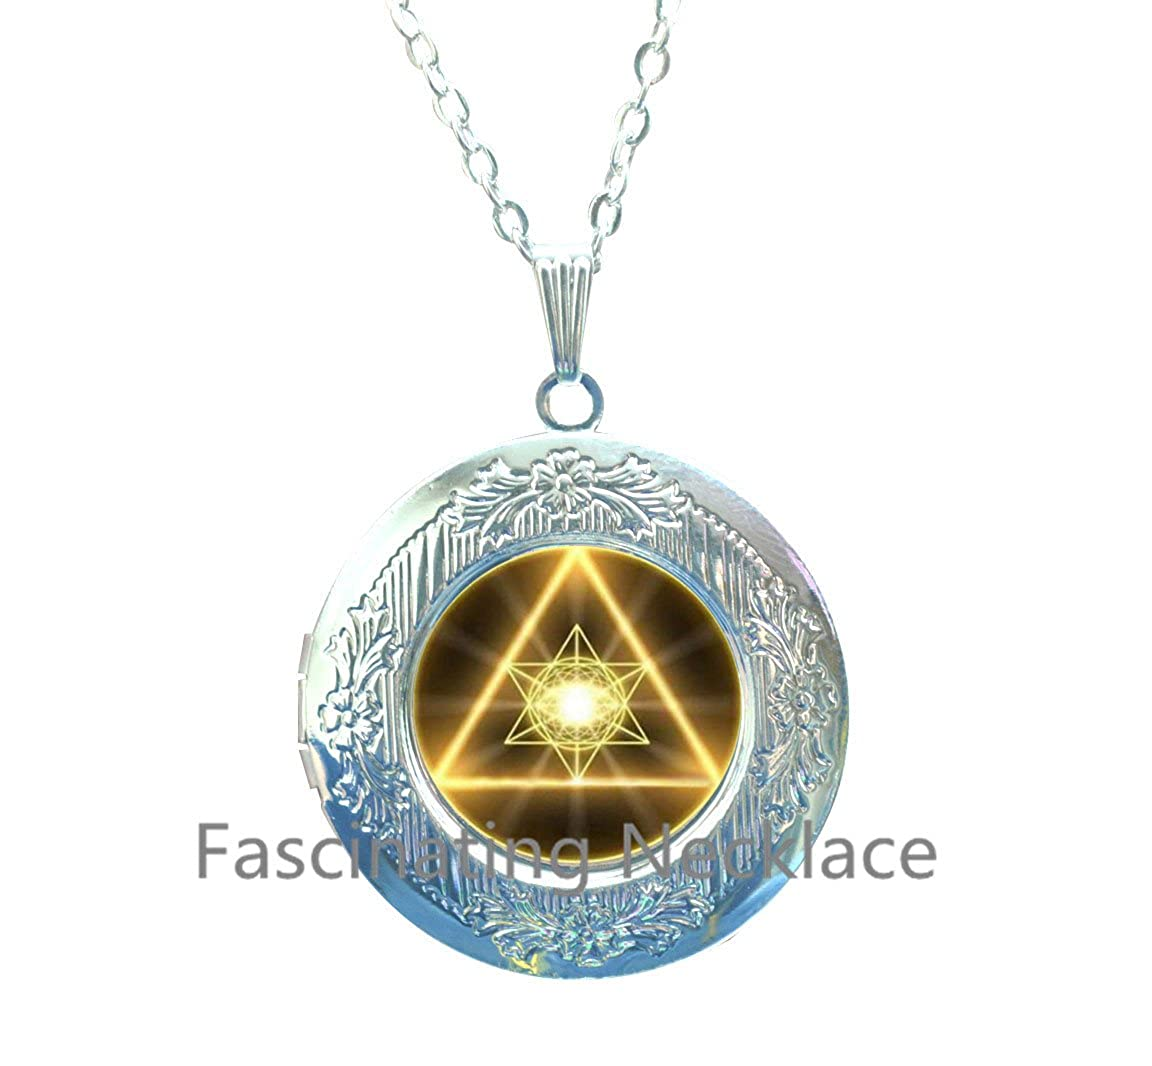 New Locket Necklace,Gold Sacred Geometry Cabochon Glass Tibet Silver Chain Locket Pendant Locket Necklace,AE0042